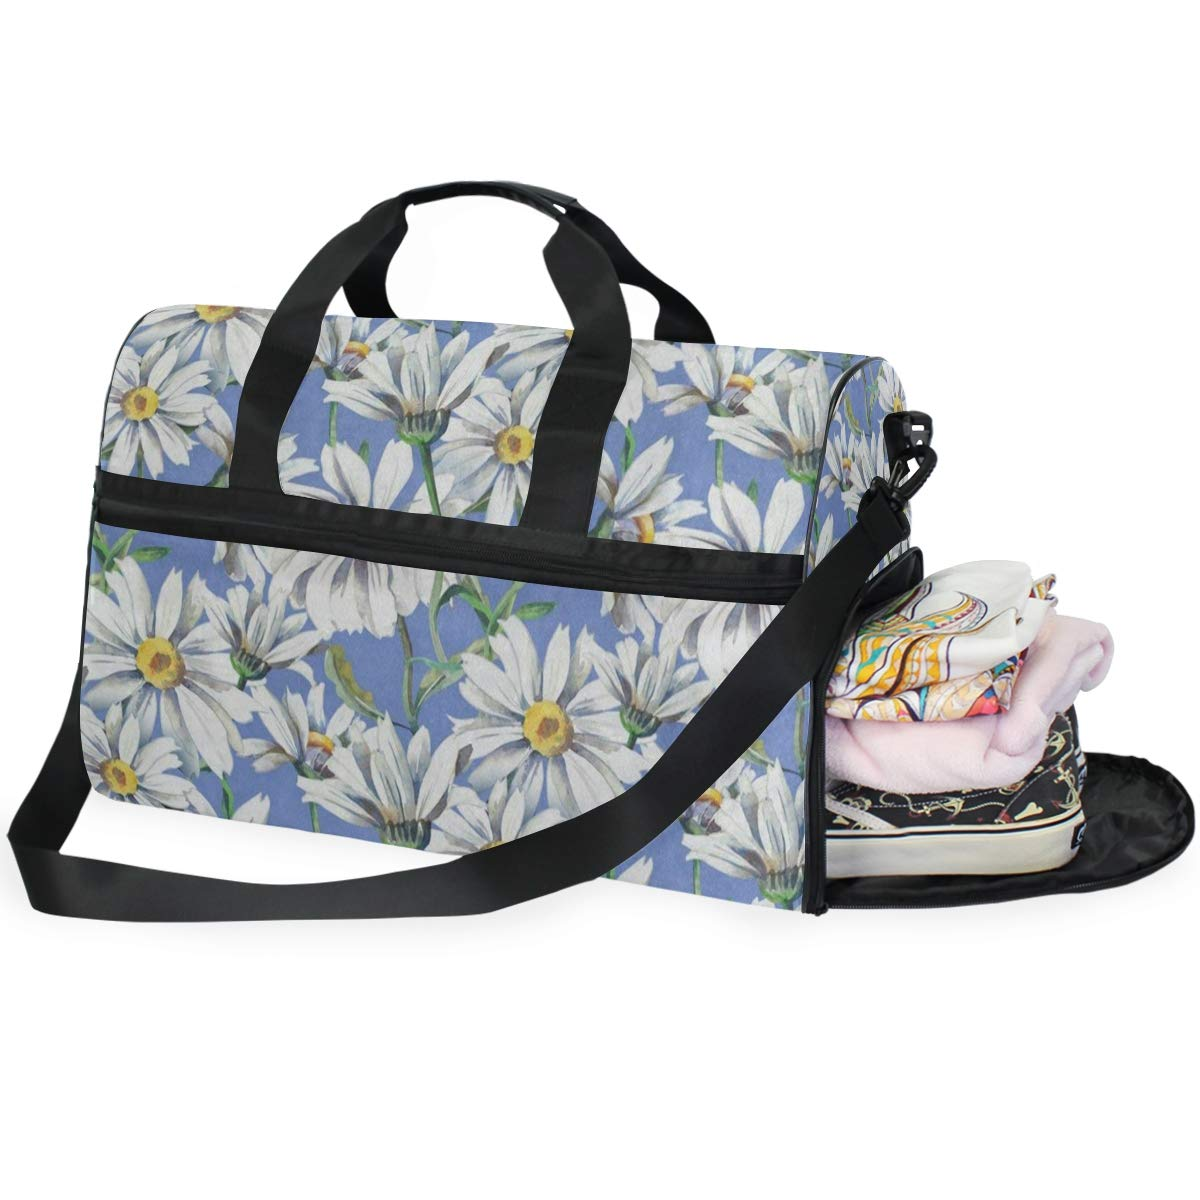 Travel Tote Luggage Weekender Duffle Bag Colored Flower Floral Large Canvas shoulder bag with Shoe Compartment